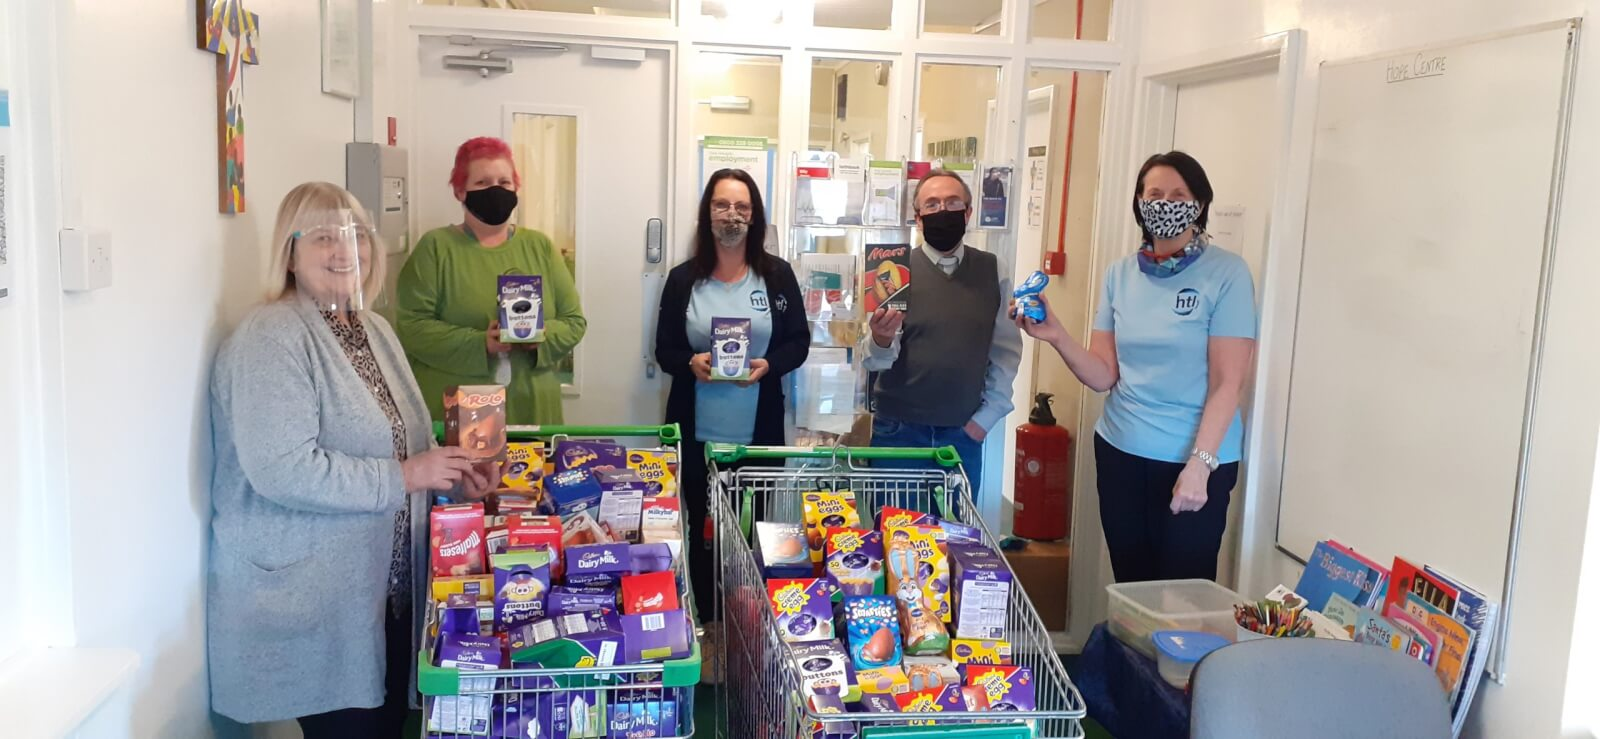 Easter Egg Donations for Local Food Bank